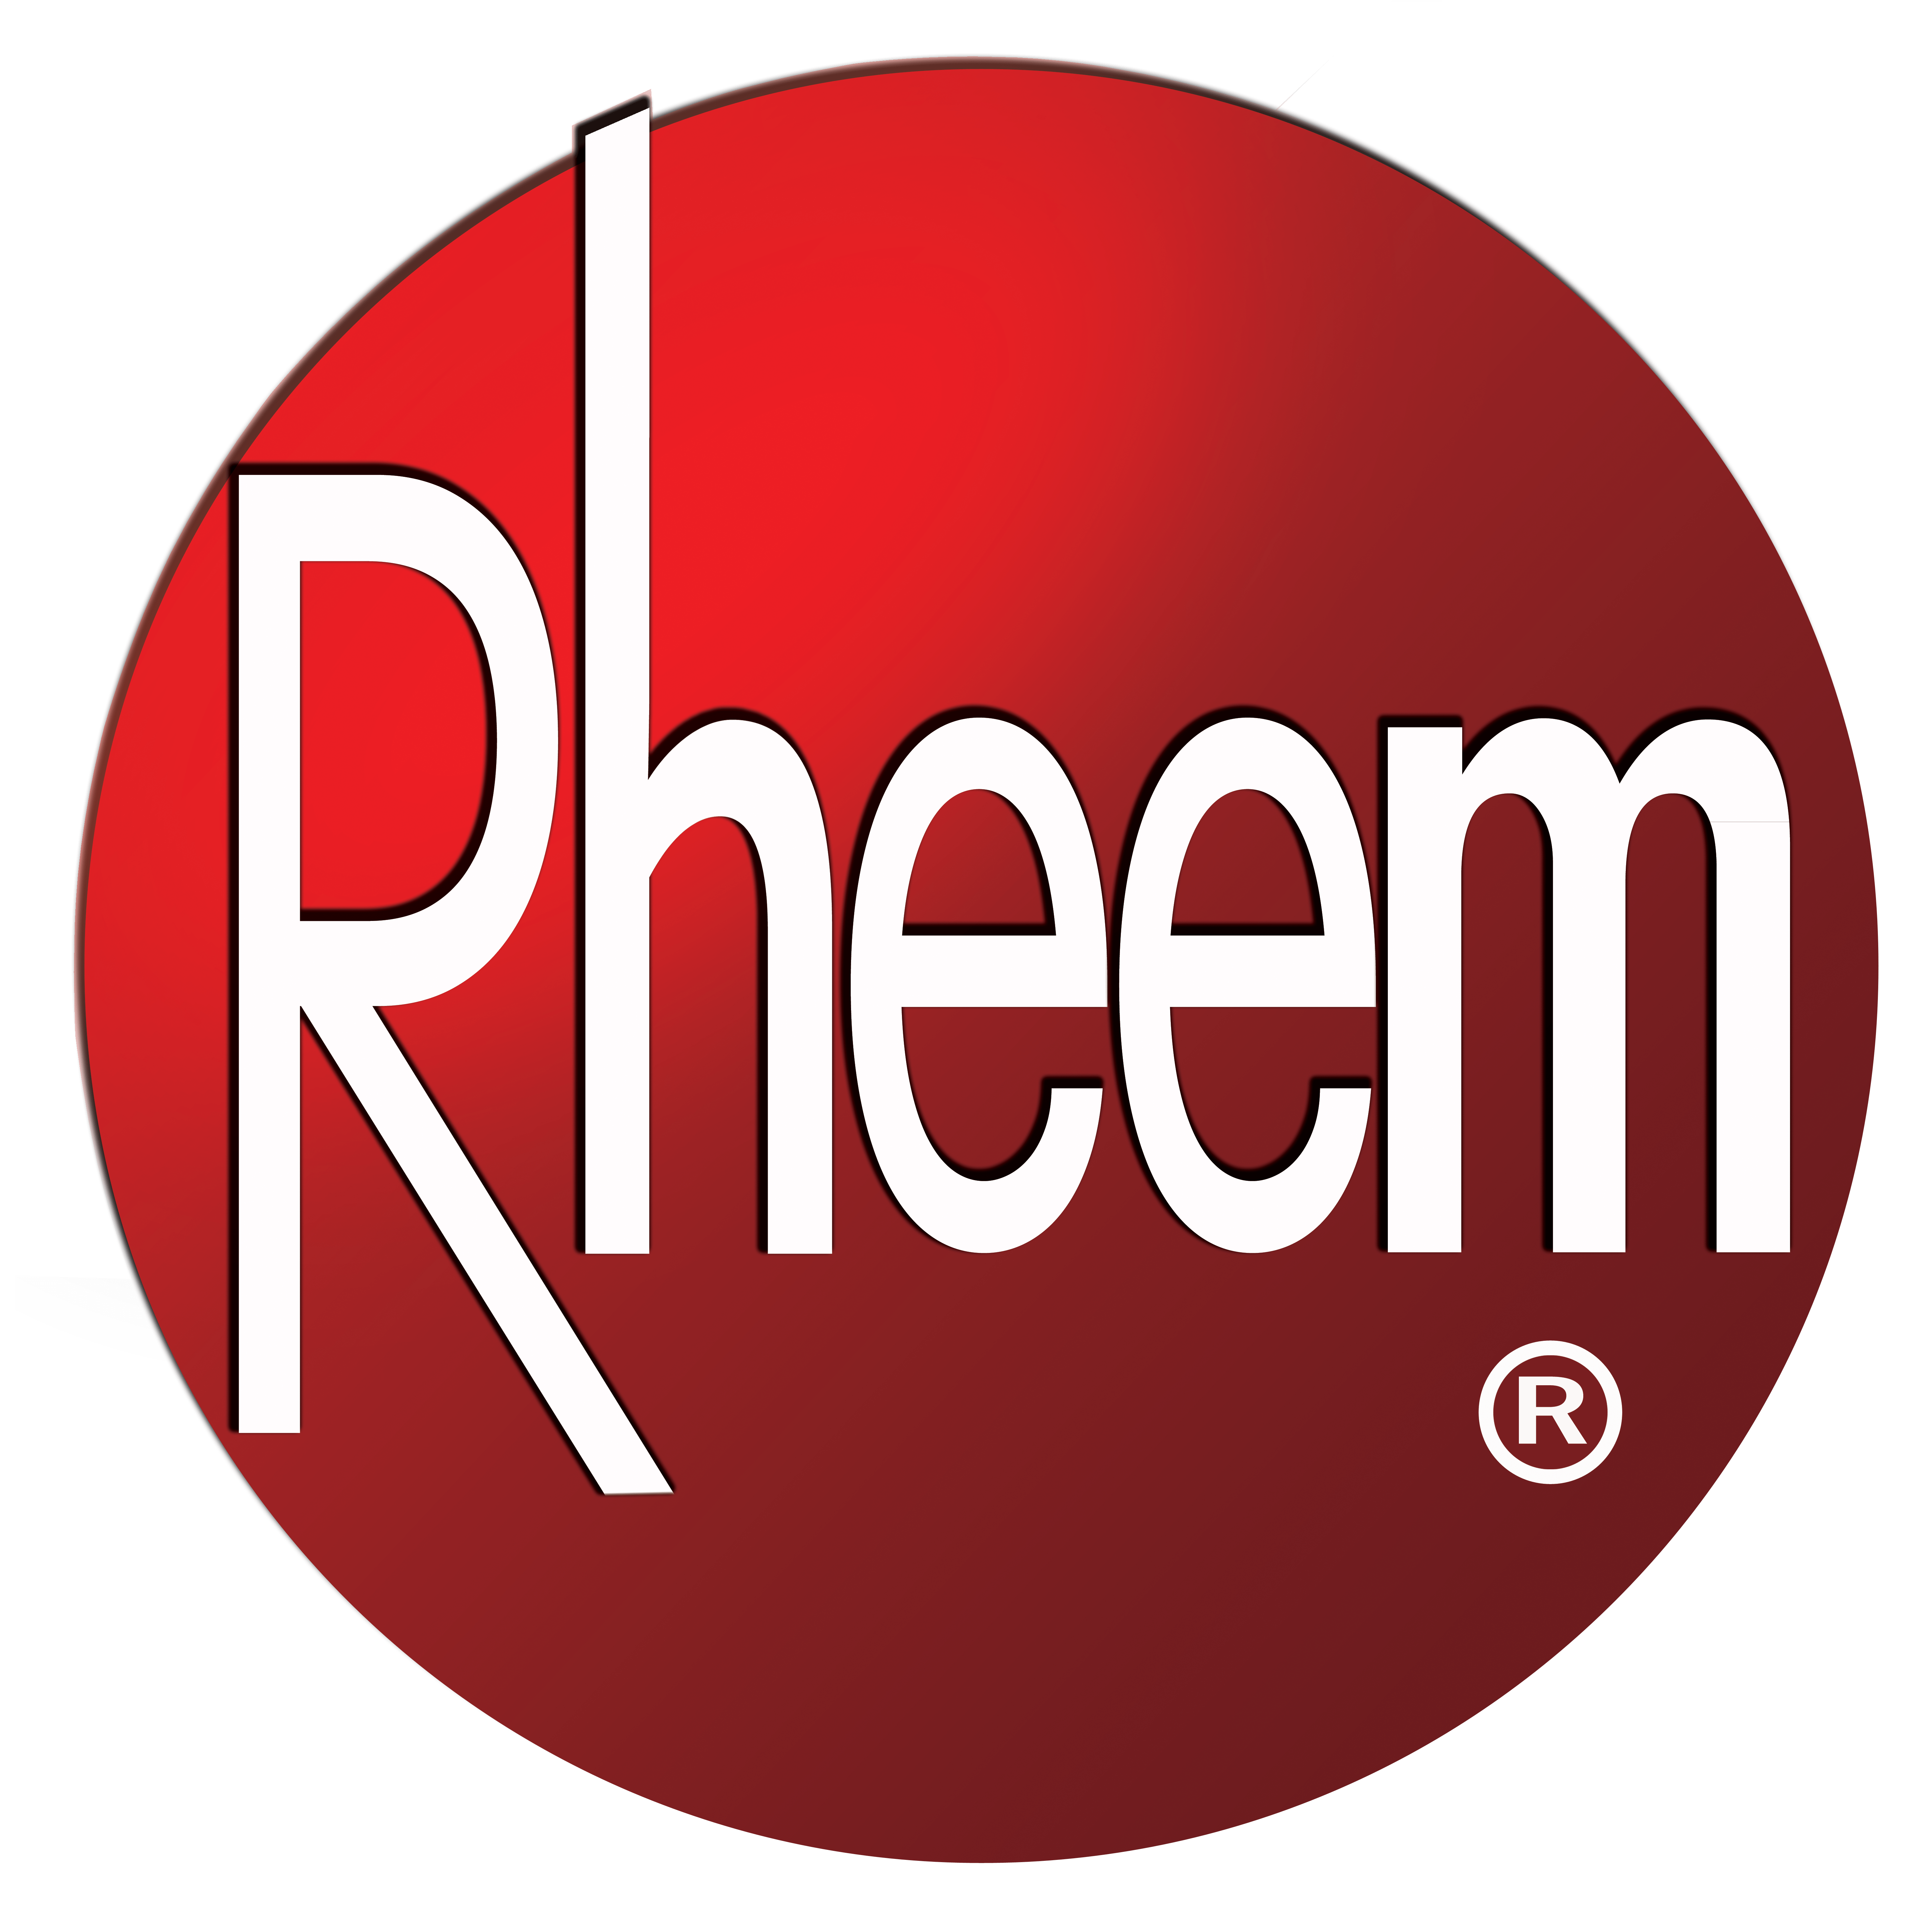 Rheem Logo - Rheem Logo Png (99+ images in Collection) Page 3